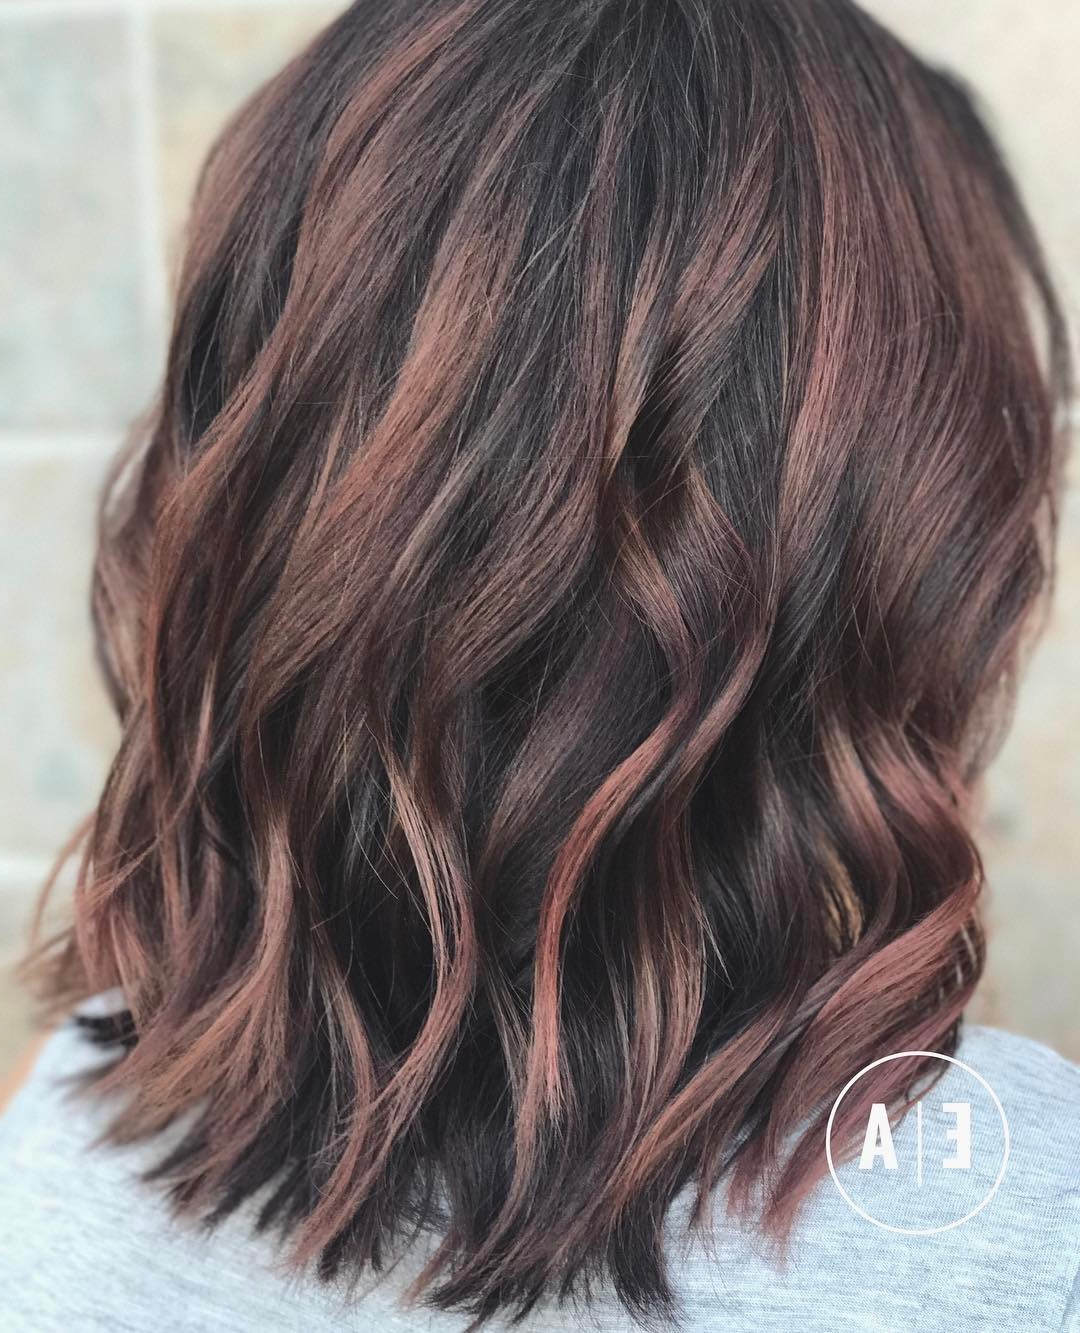 10 Balayage Hair Styles For Medium Length Hair 2019 – Freshen Up Pertaining To Popular Medium Haircuts With Red Color (Gallery 9 of 20)